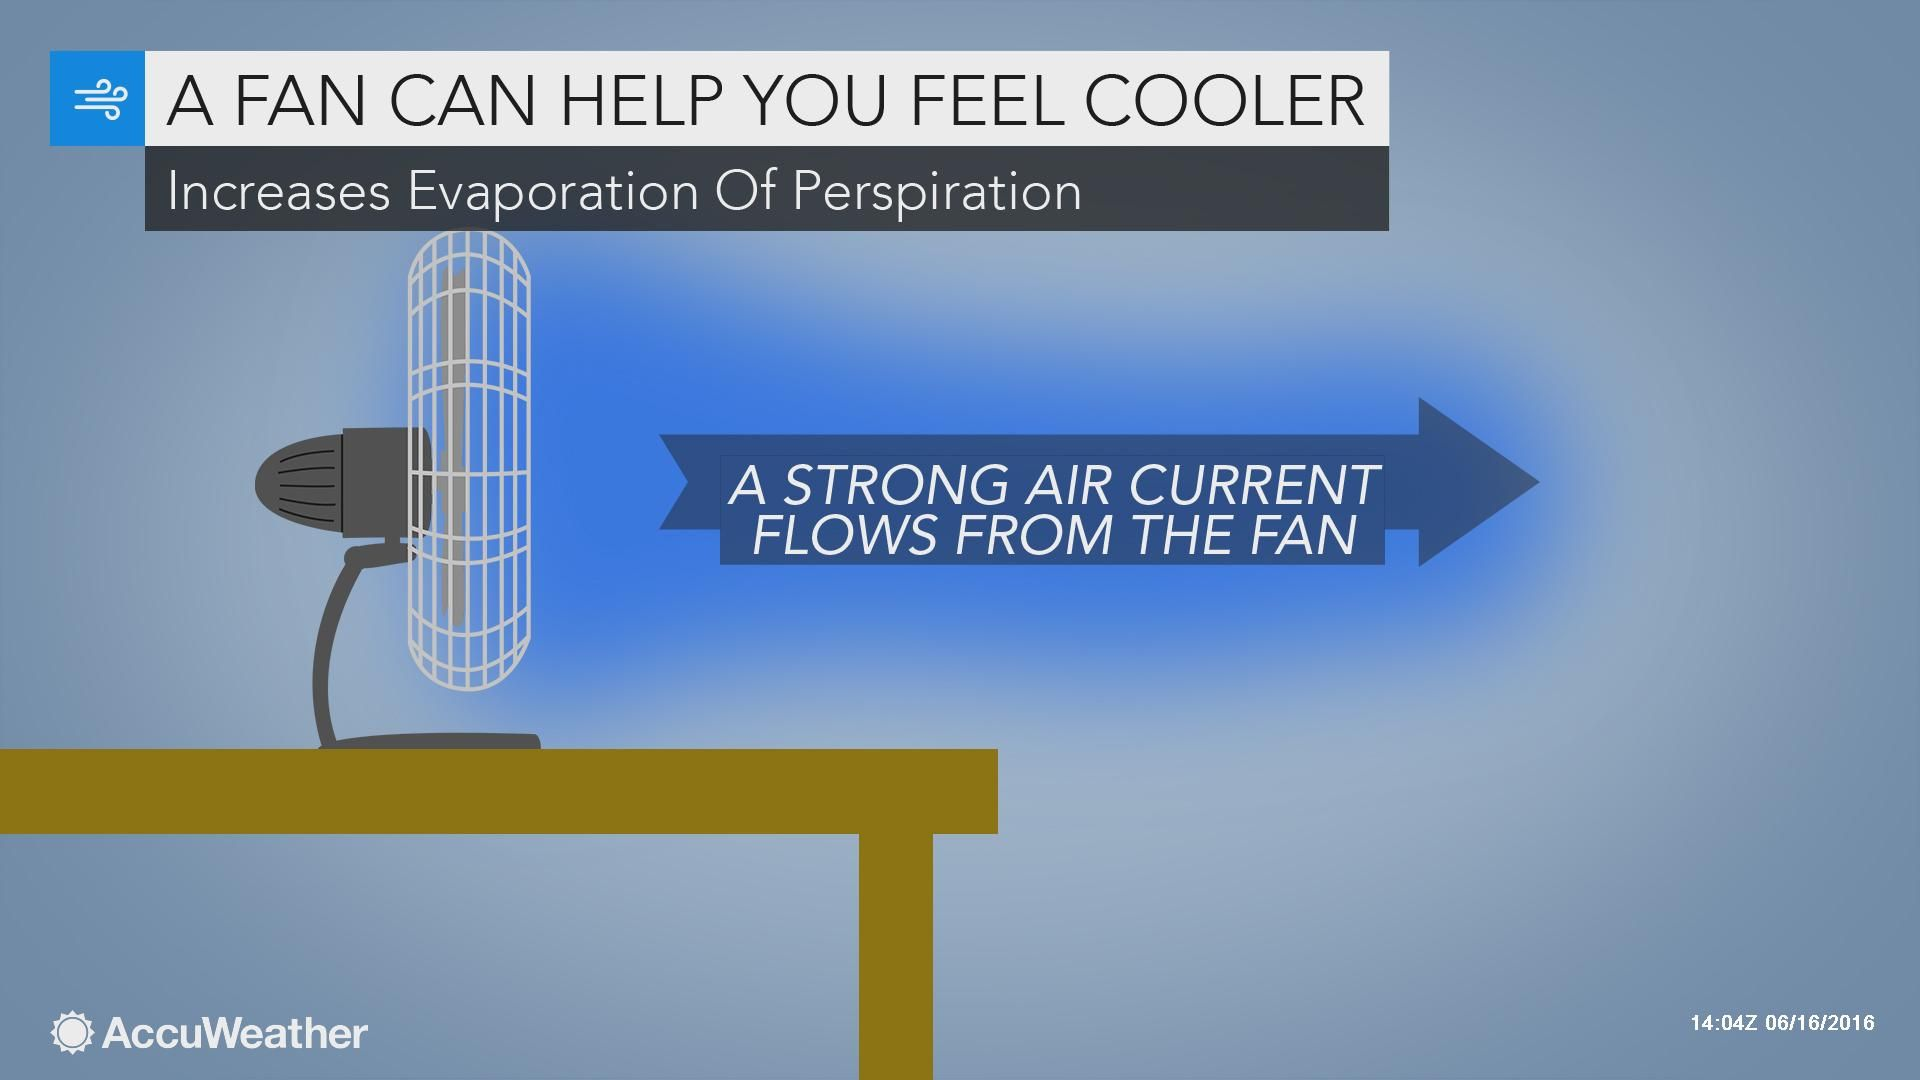 Accuweather Weatherwhys The Strong Flow From A Fan Cools You Off